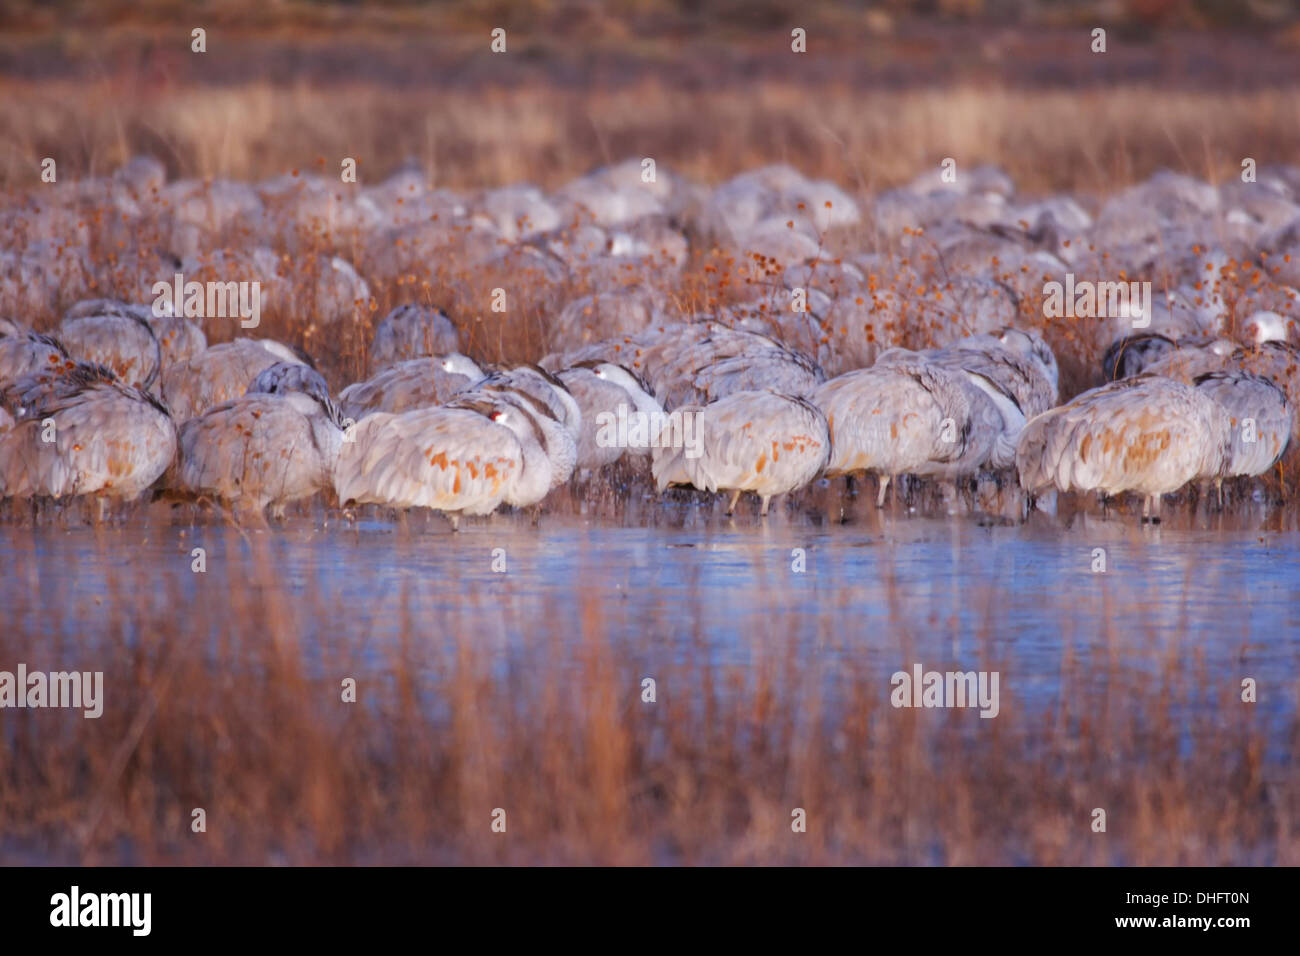 Sleeping sandhill cranes, Bosque del Apache National Wildlife Refuge, New Mexico USA - Stock Image